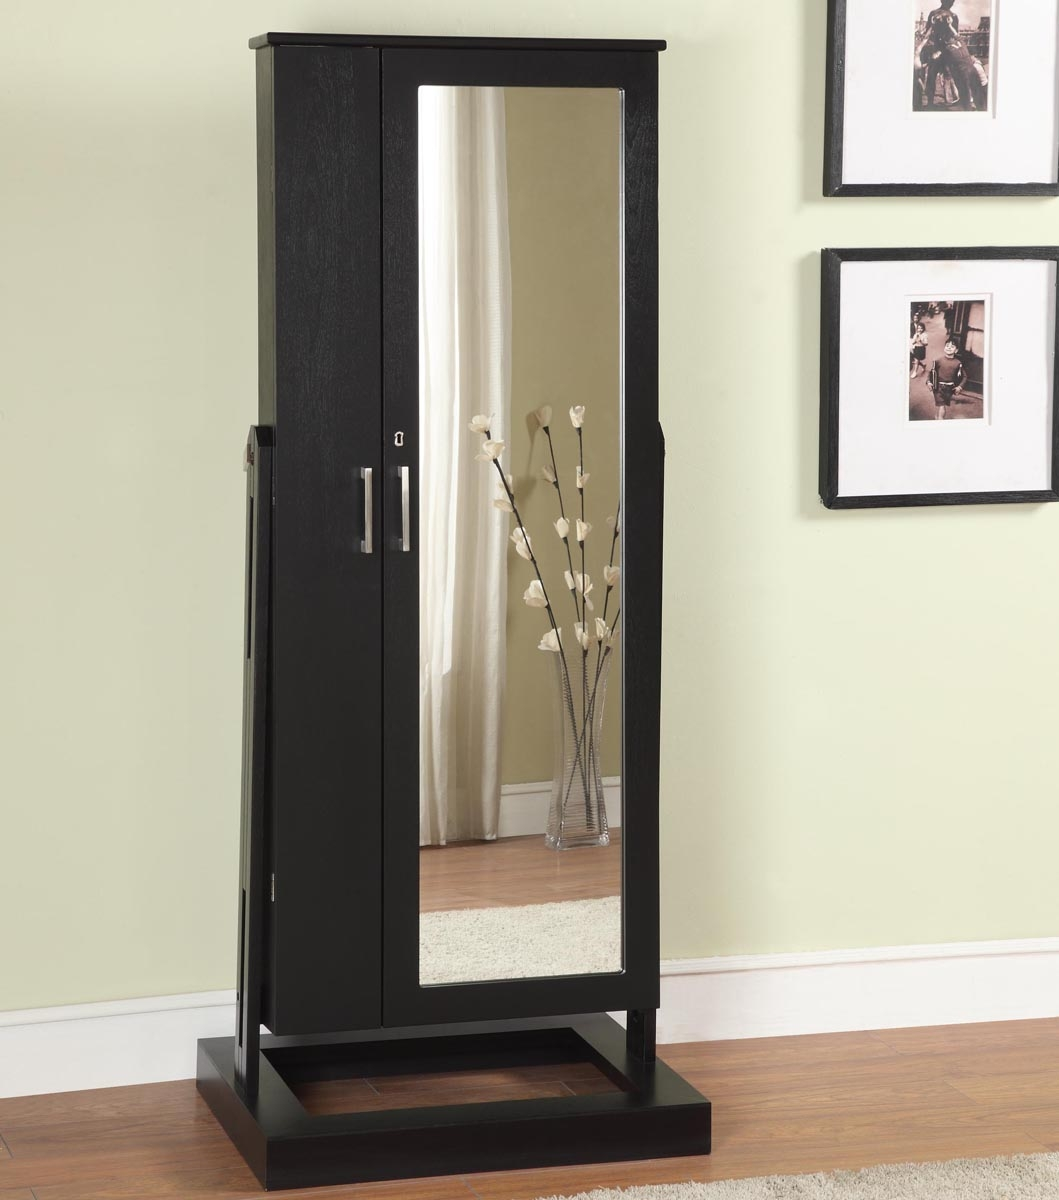 Accessories Delectable Furniture And Accessories For Bedroom And Regarding Free Standing Black Mirror (Image 1 of 15)